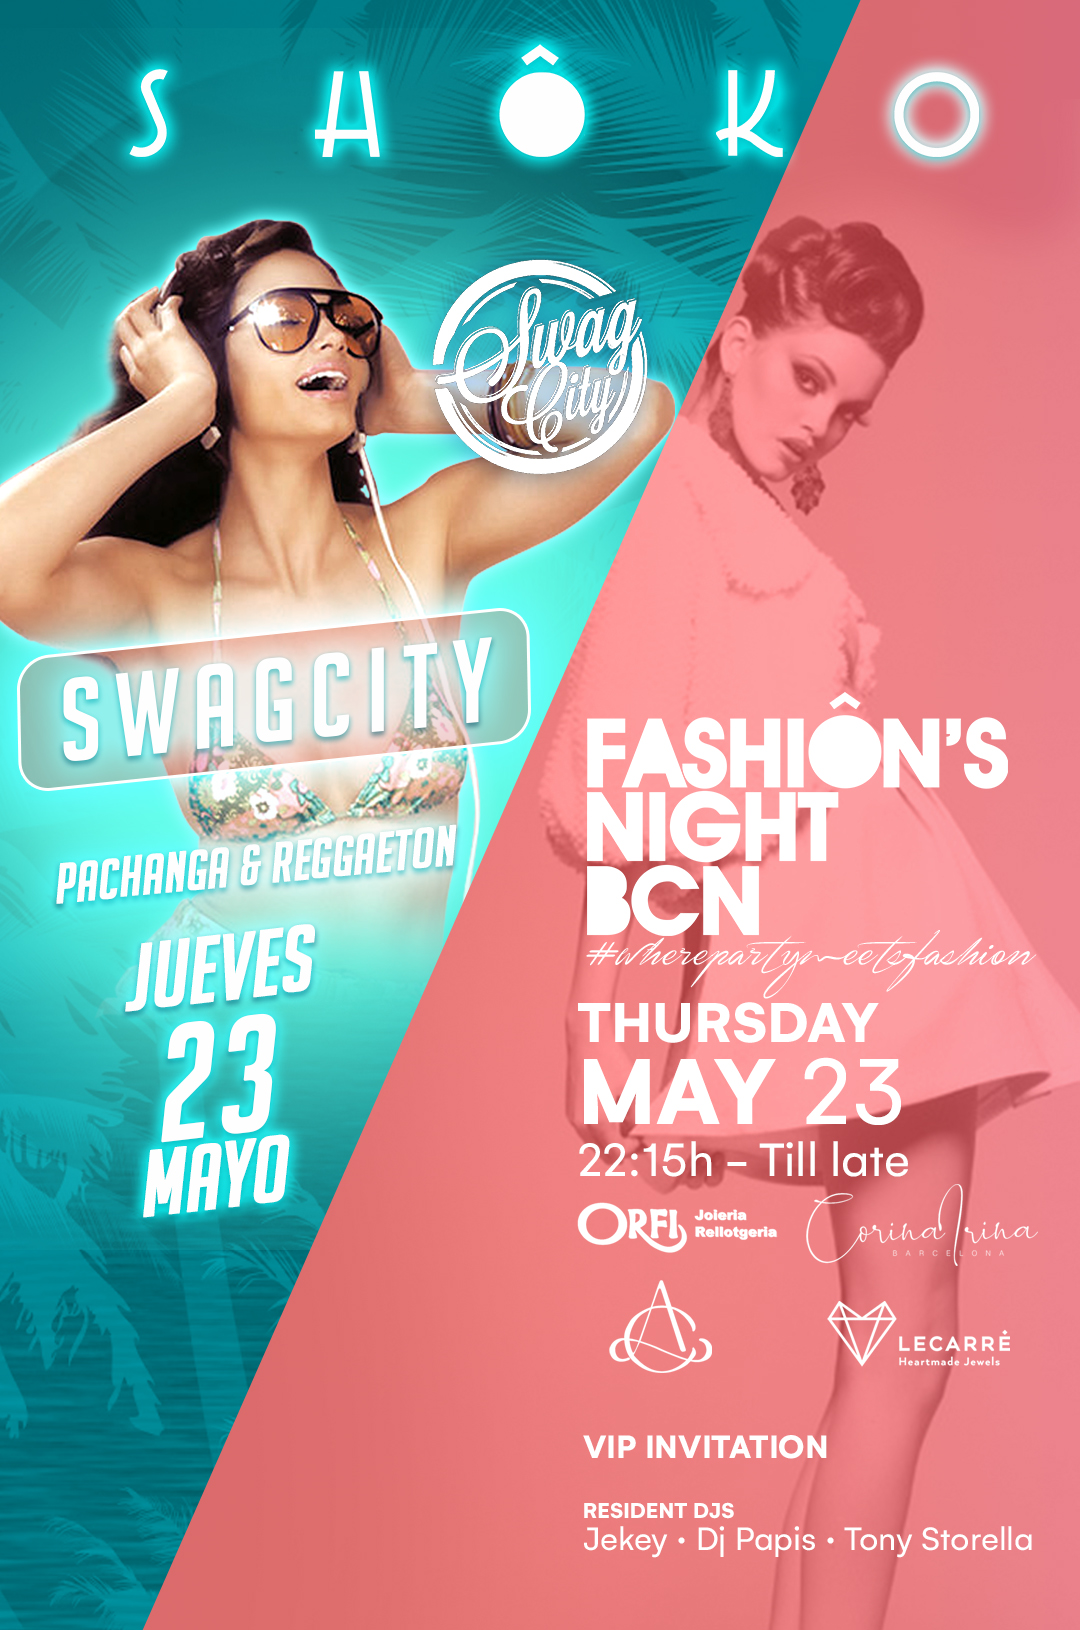 Swag City w/ Fashion's Night Special Thursday